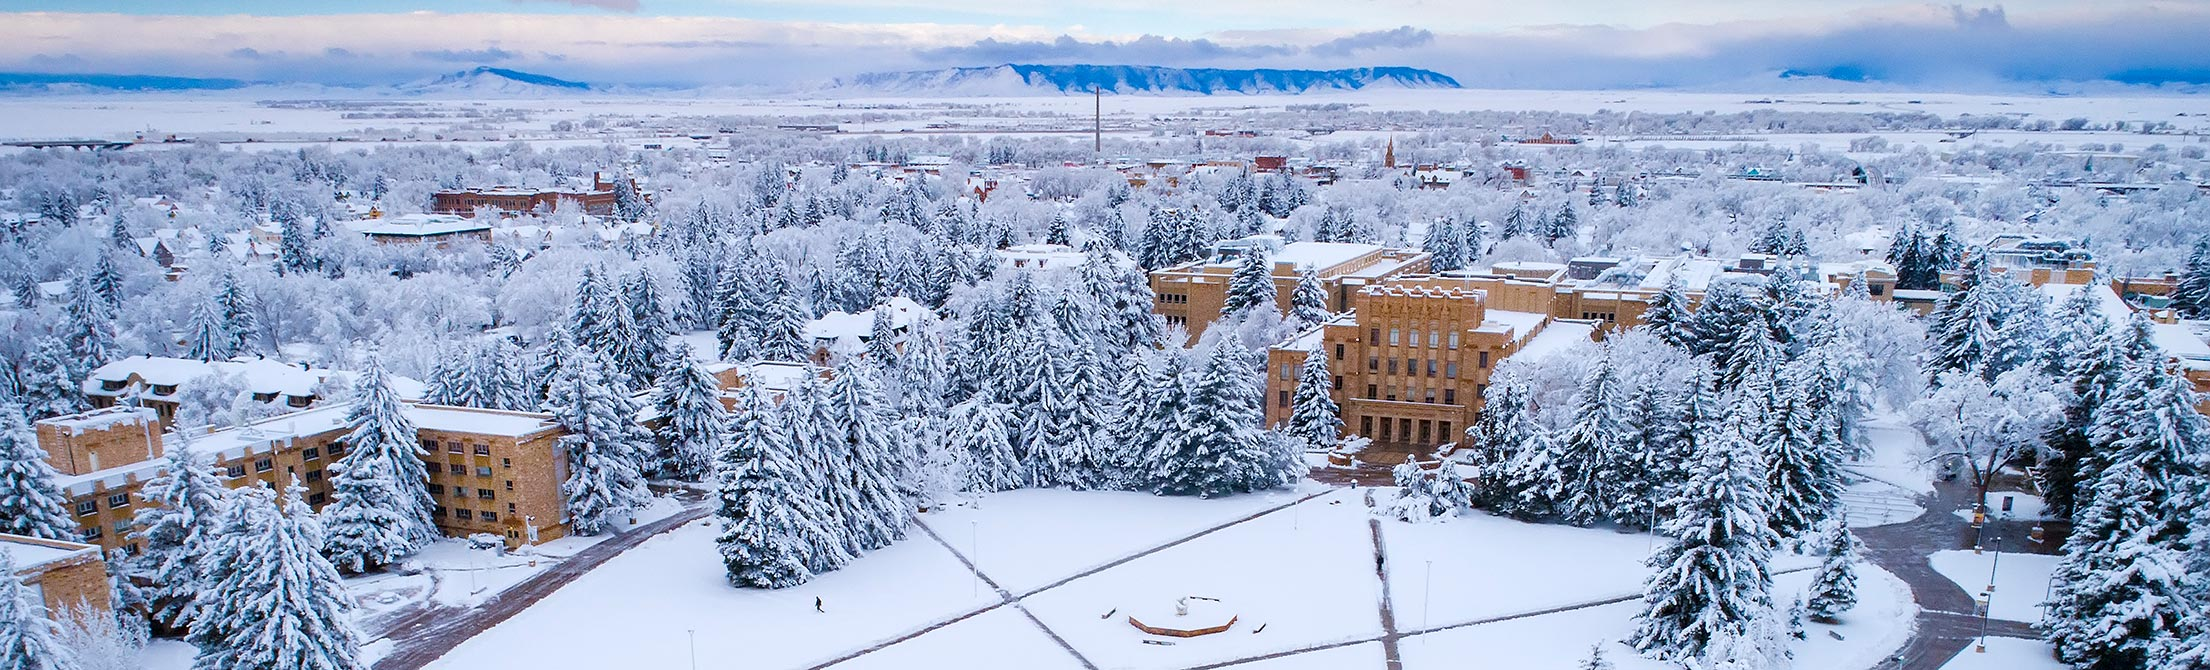 Aerial view of the UW campus surrounded by snow